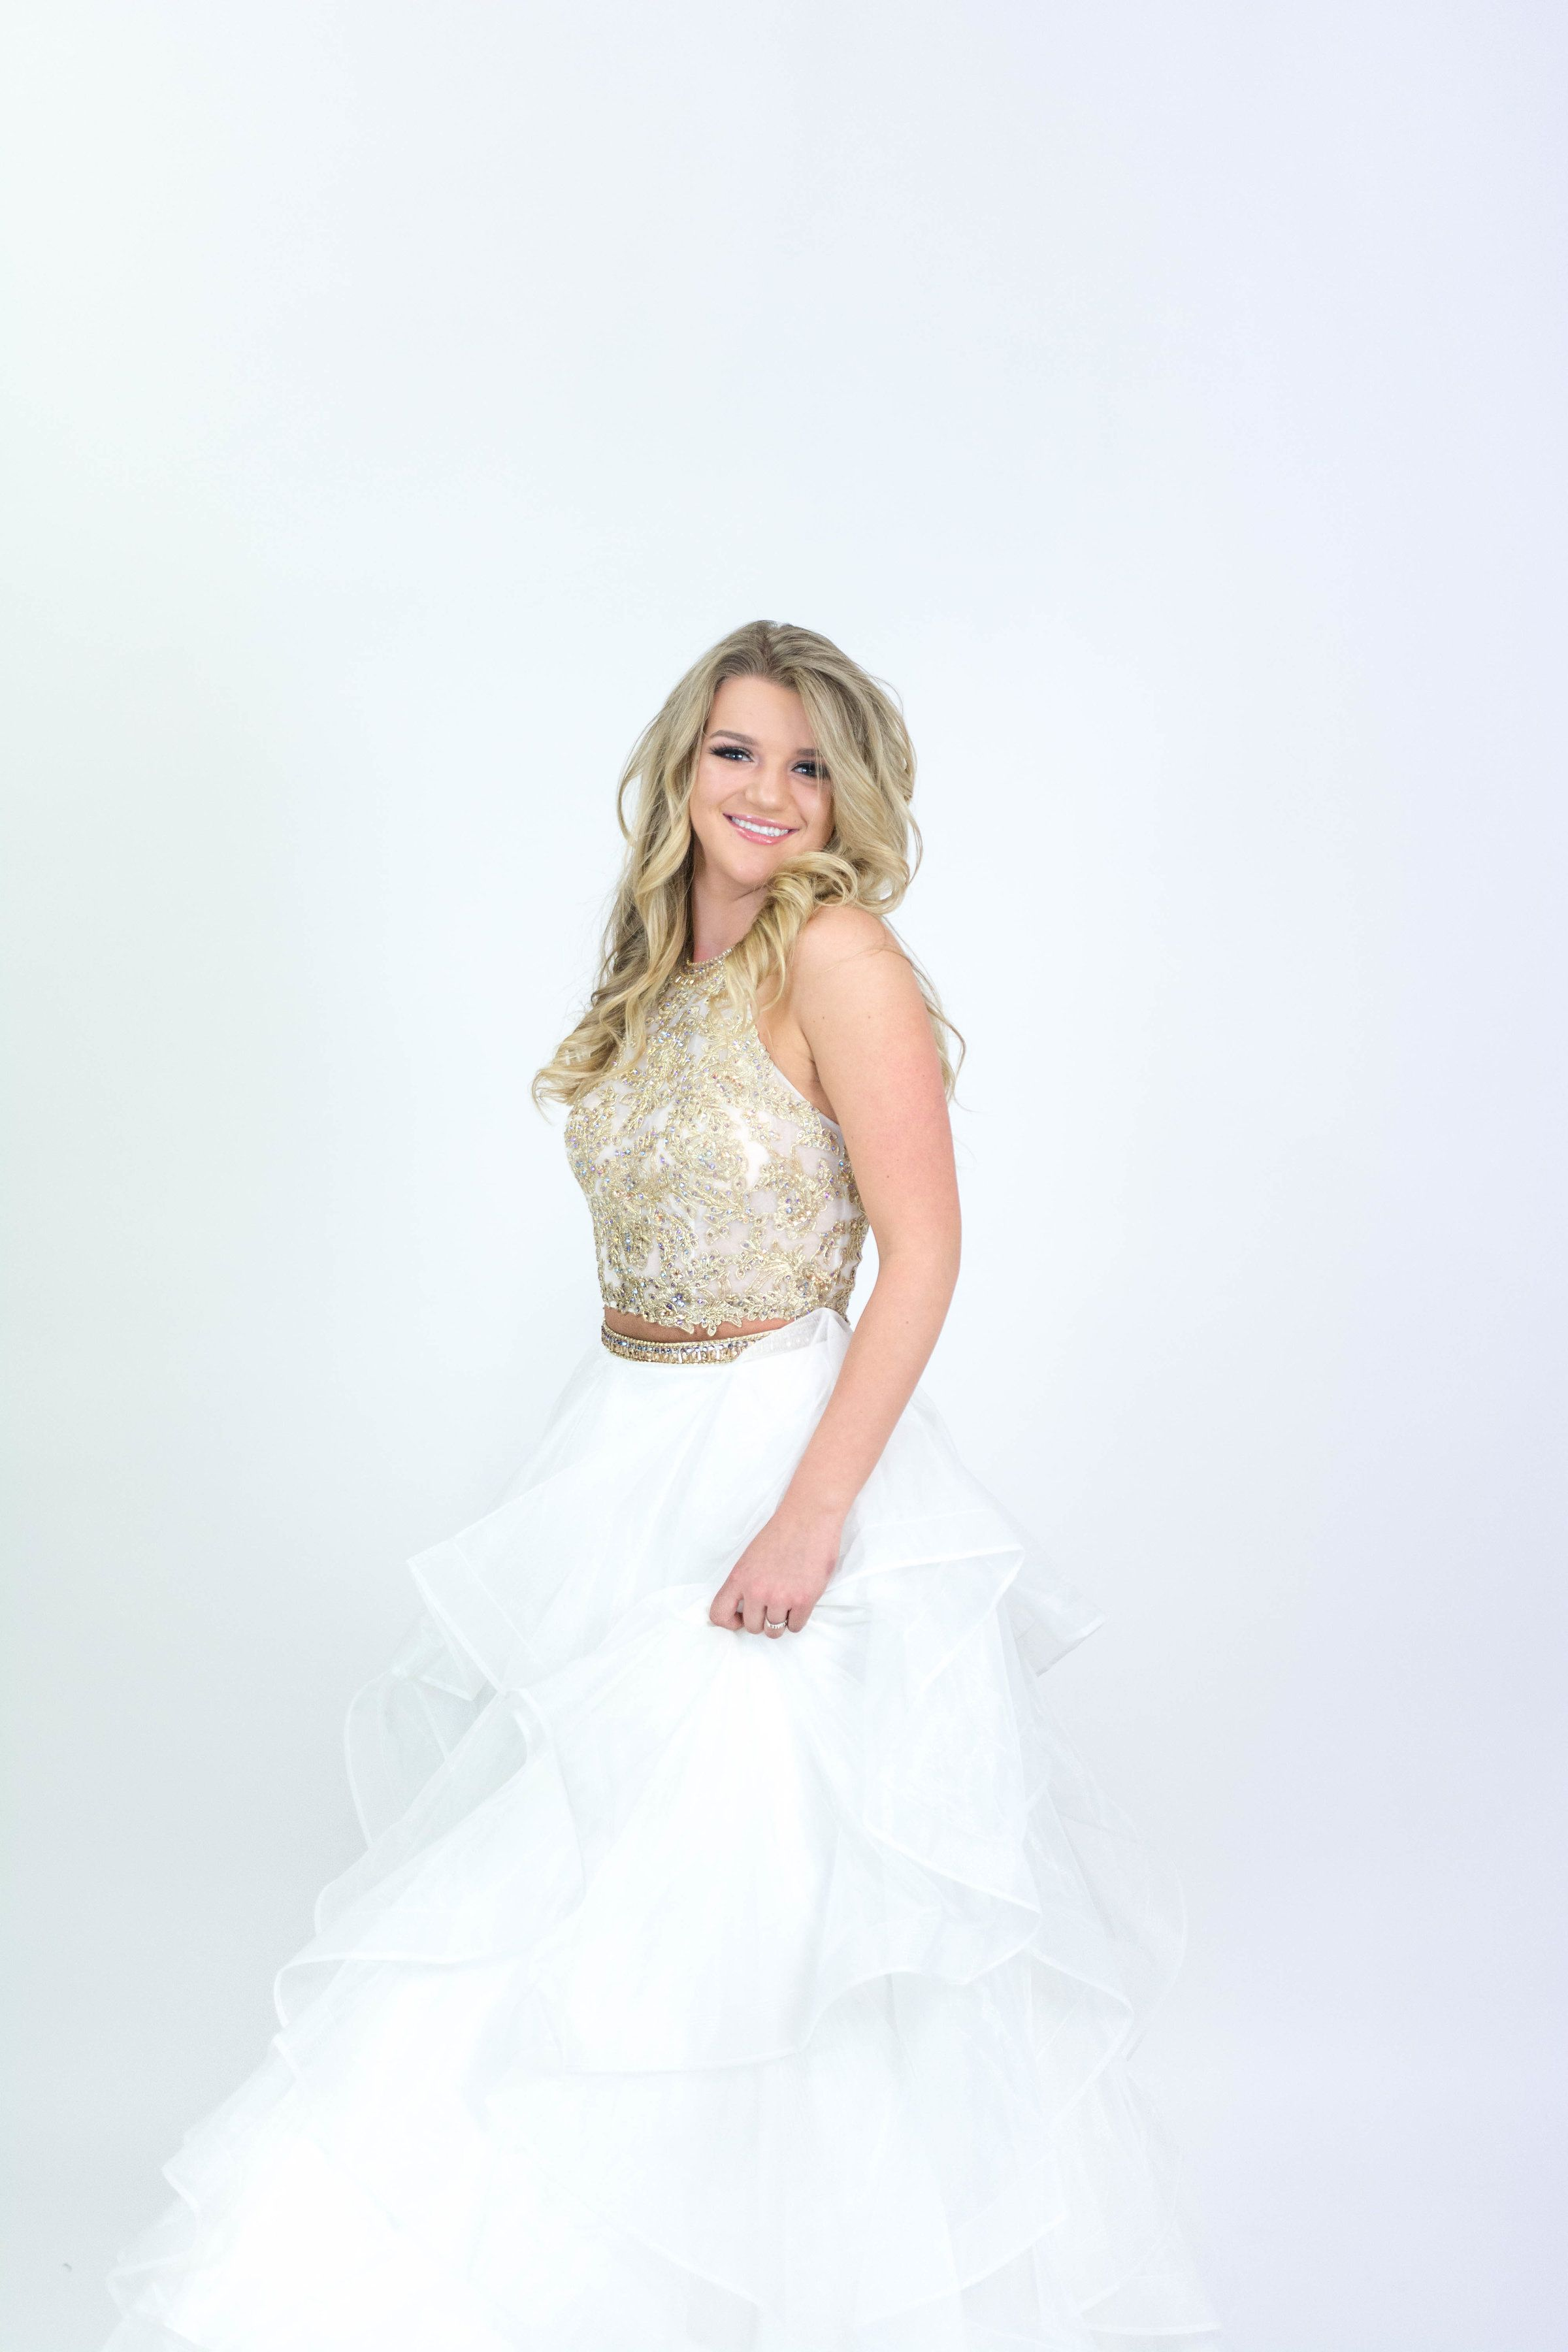 White piece ruffle skirt and gold beaded top ypsilon dresses prom